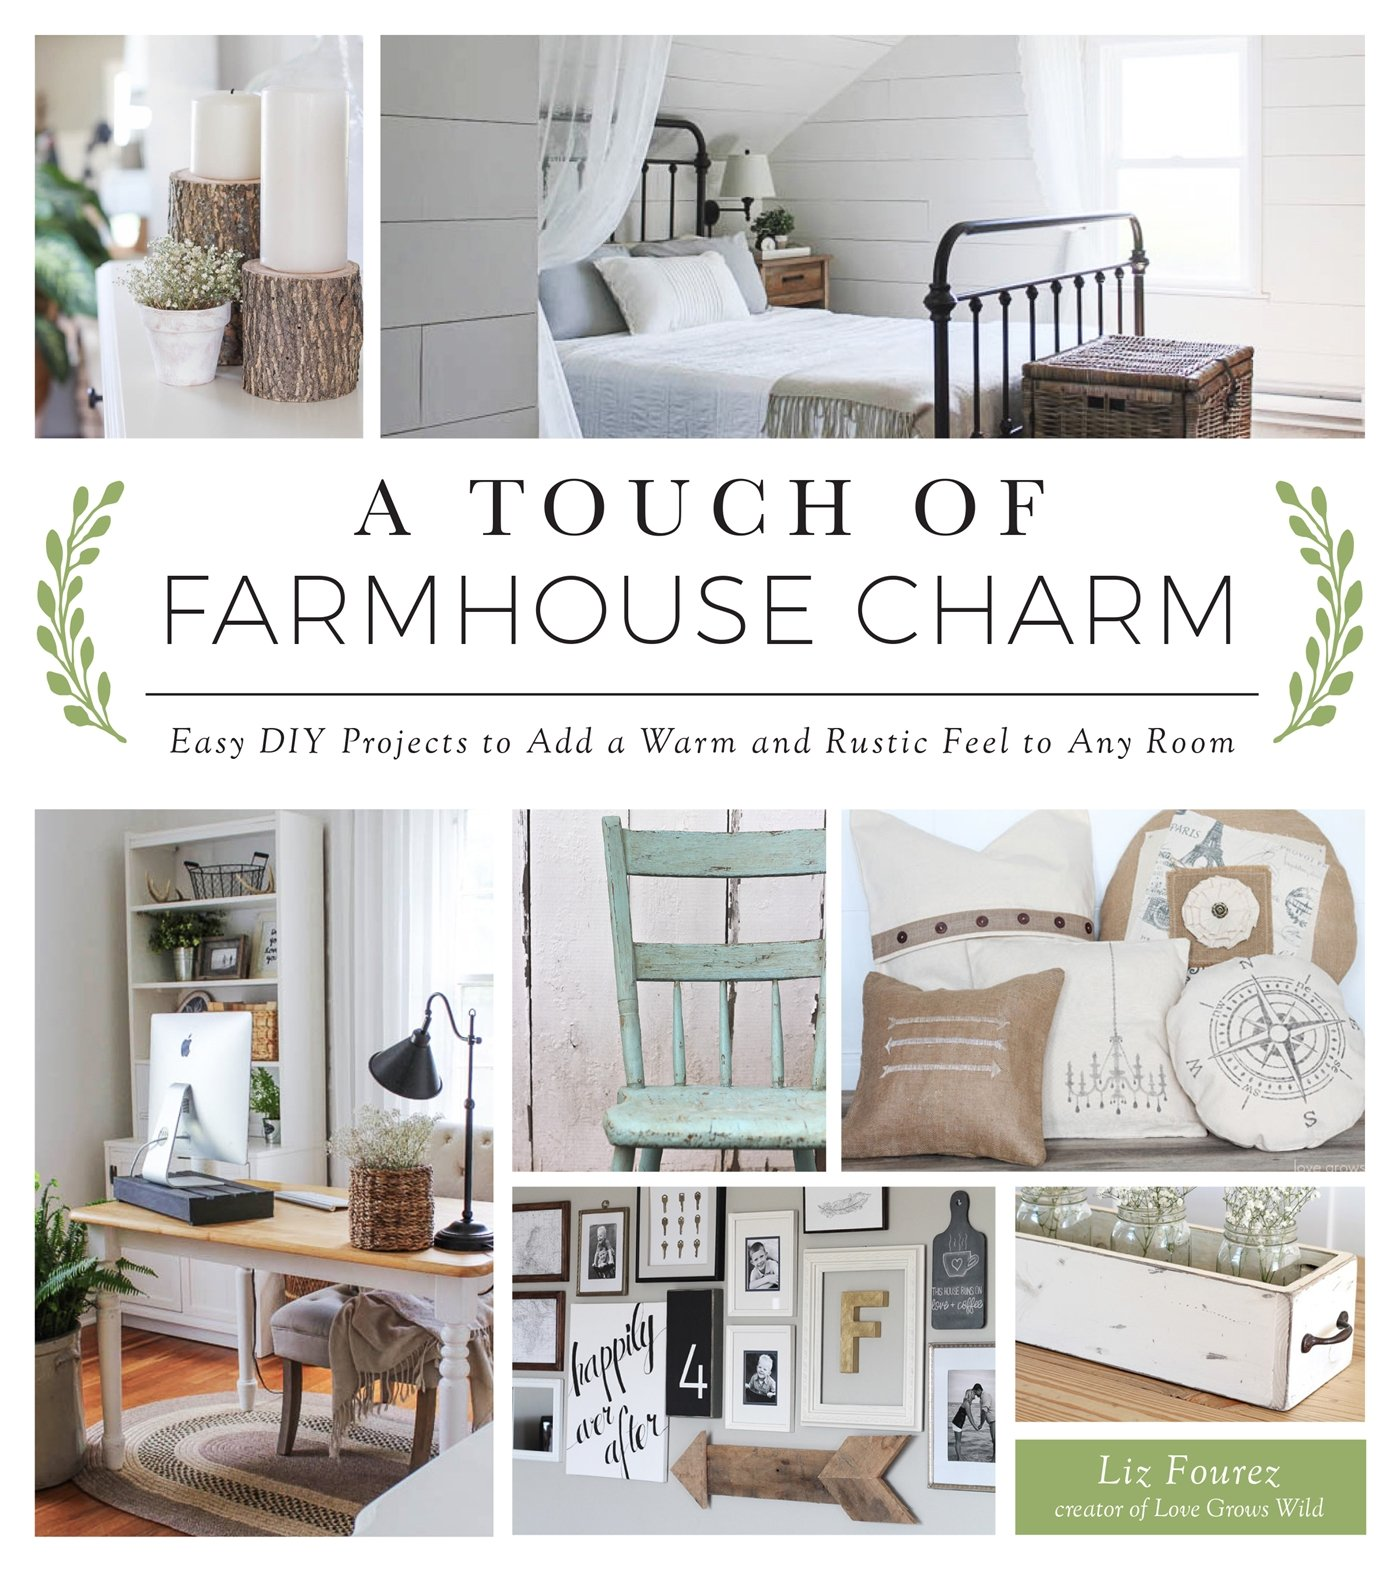 The ultimate list of Fixer Upper Gift Ideas. Do you have a Fixer Upper fan in your life? Do you need to buy them a gift? Browse this gift guide to pick the perfect present for your Finer Upper fan! If they love Chip + Joanna Gaines, they will love these fresh farmhouse inspired gifts.